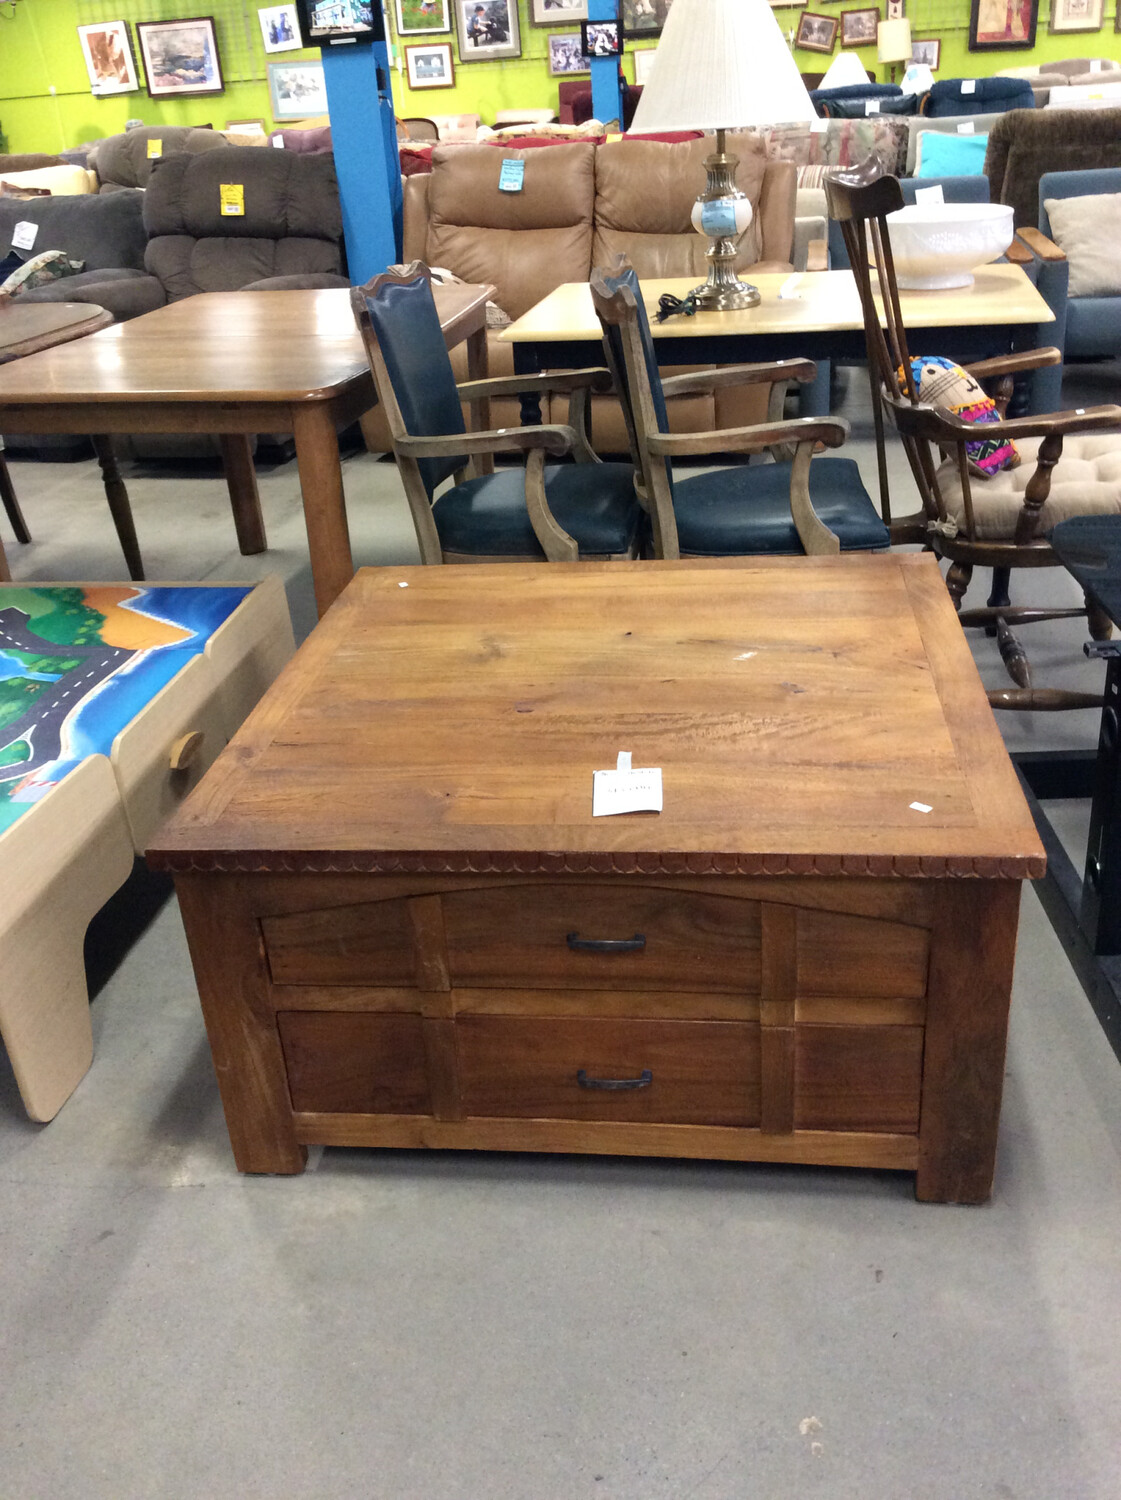 Wooden Coffee Table w/ Drawers